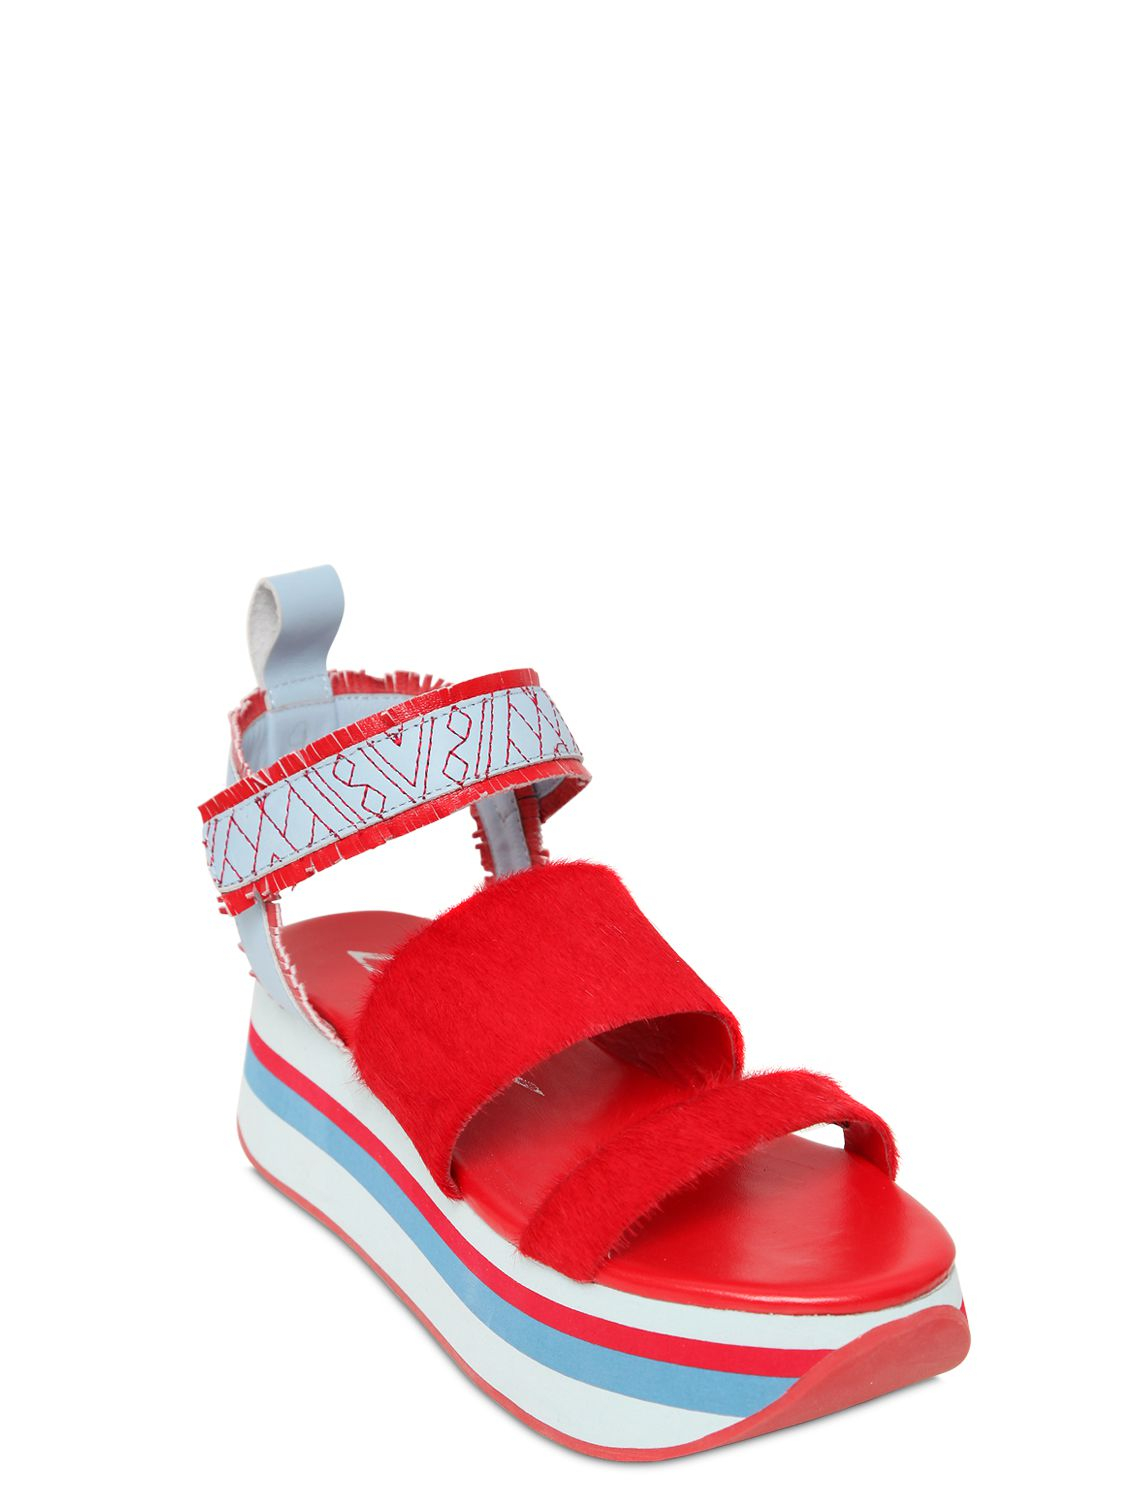 Women S Shoes With Velcro Closure And Wedge